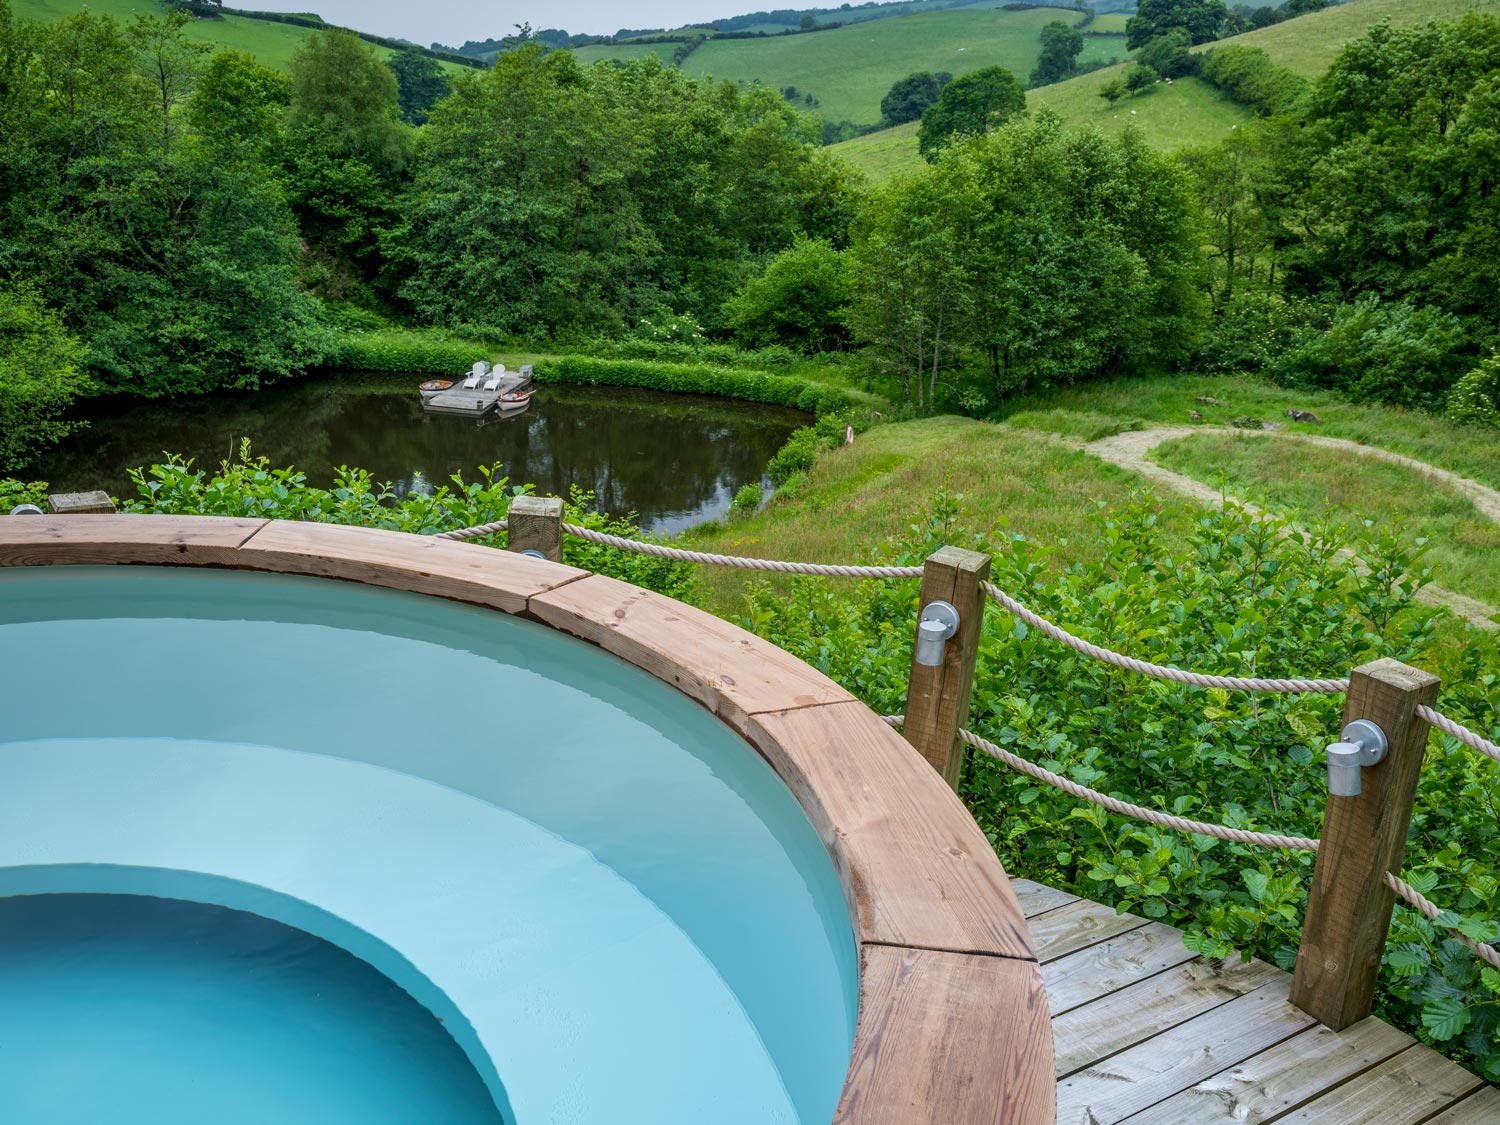 Views from Longlands Luxury Glamping hot tub